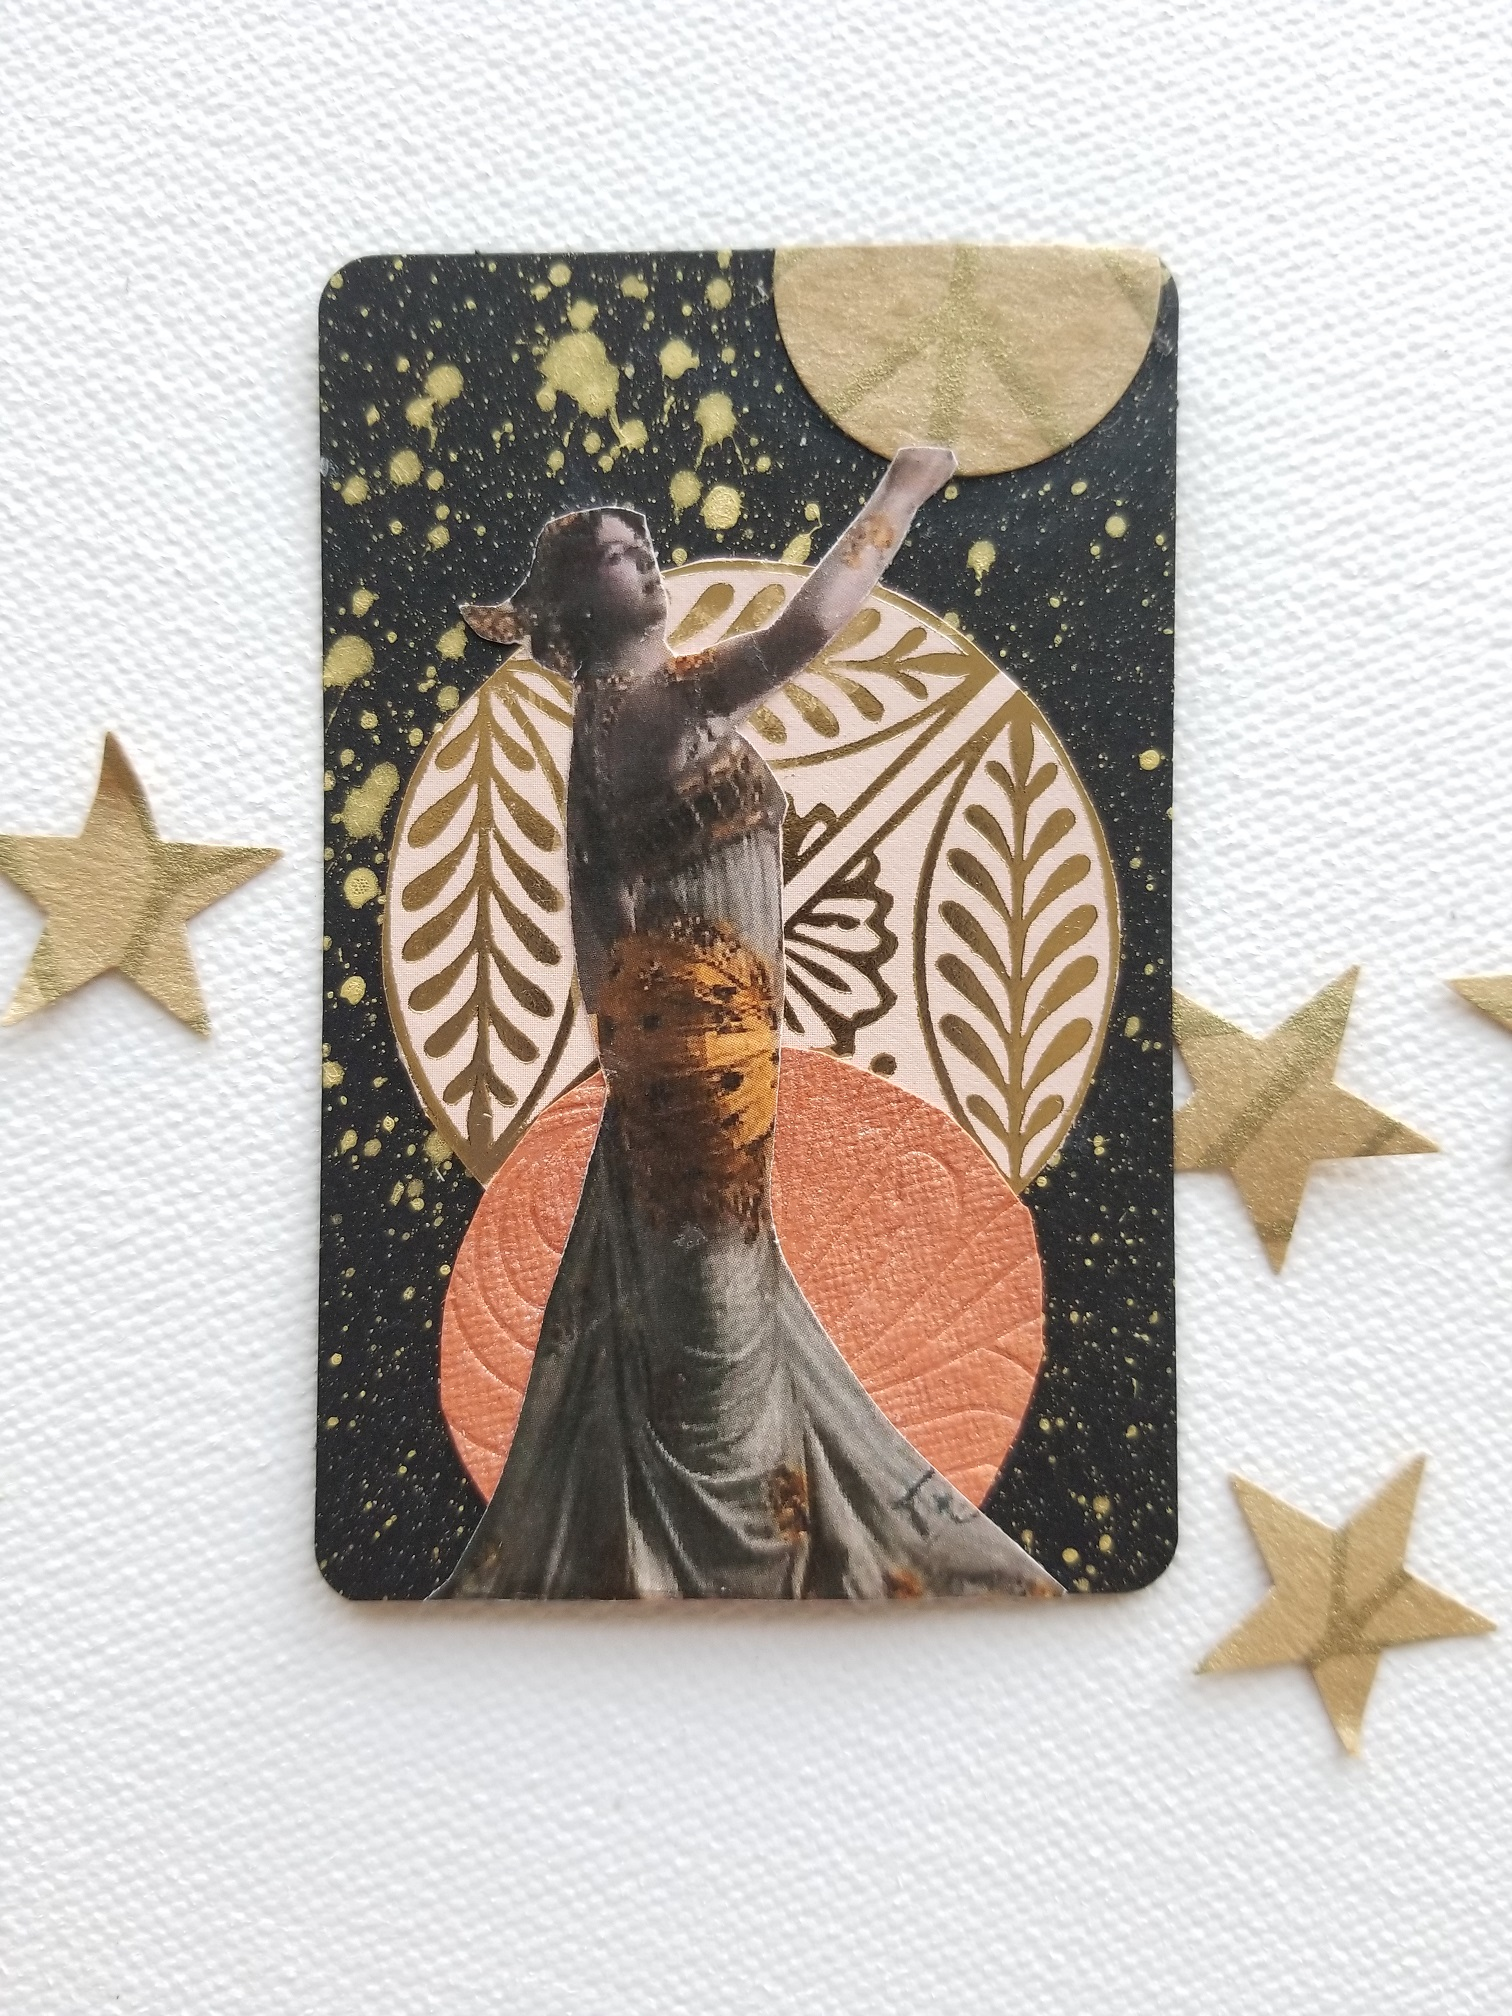 Galaxy Goddesses FortuneART Cards mixed media class by Kellee Wynne Studios (2) small.jpg